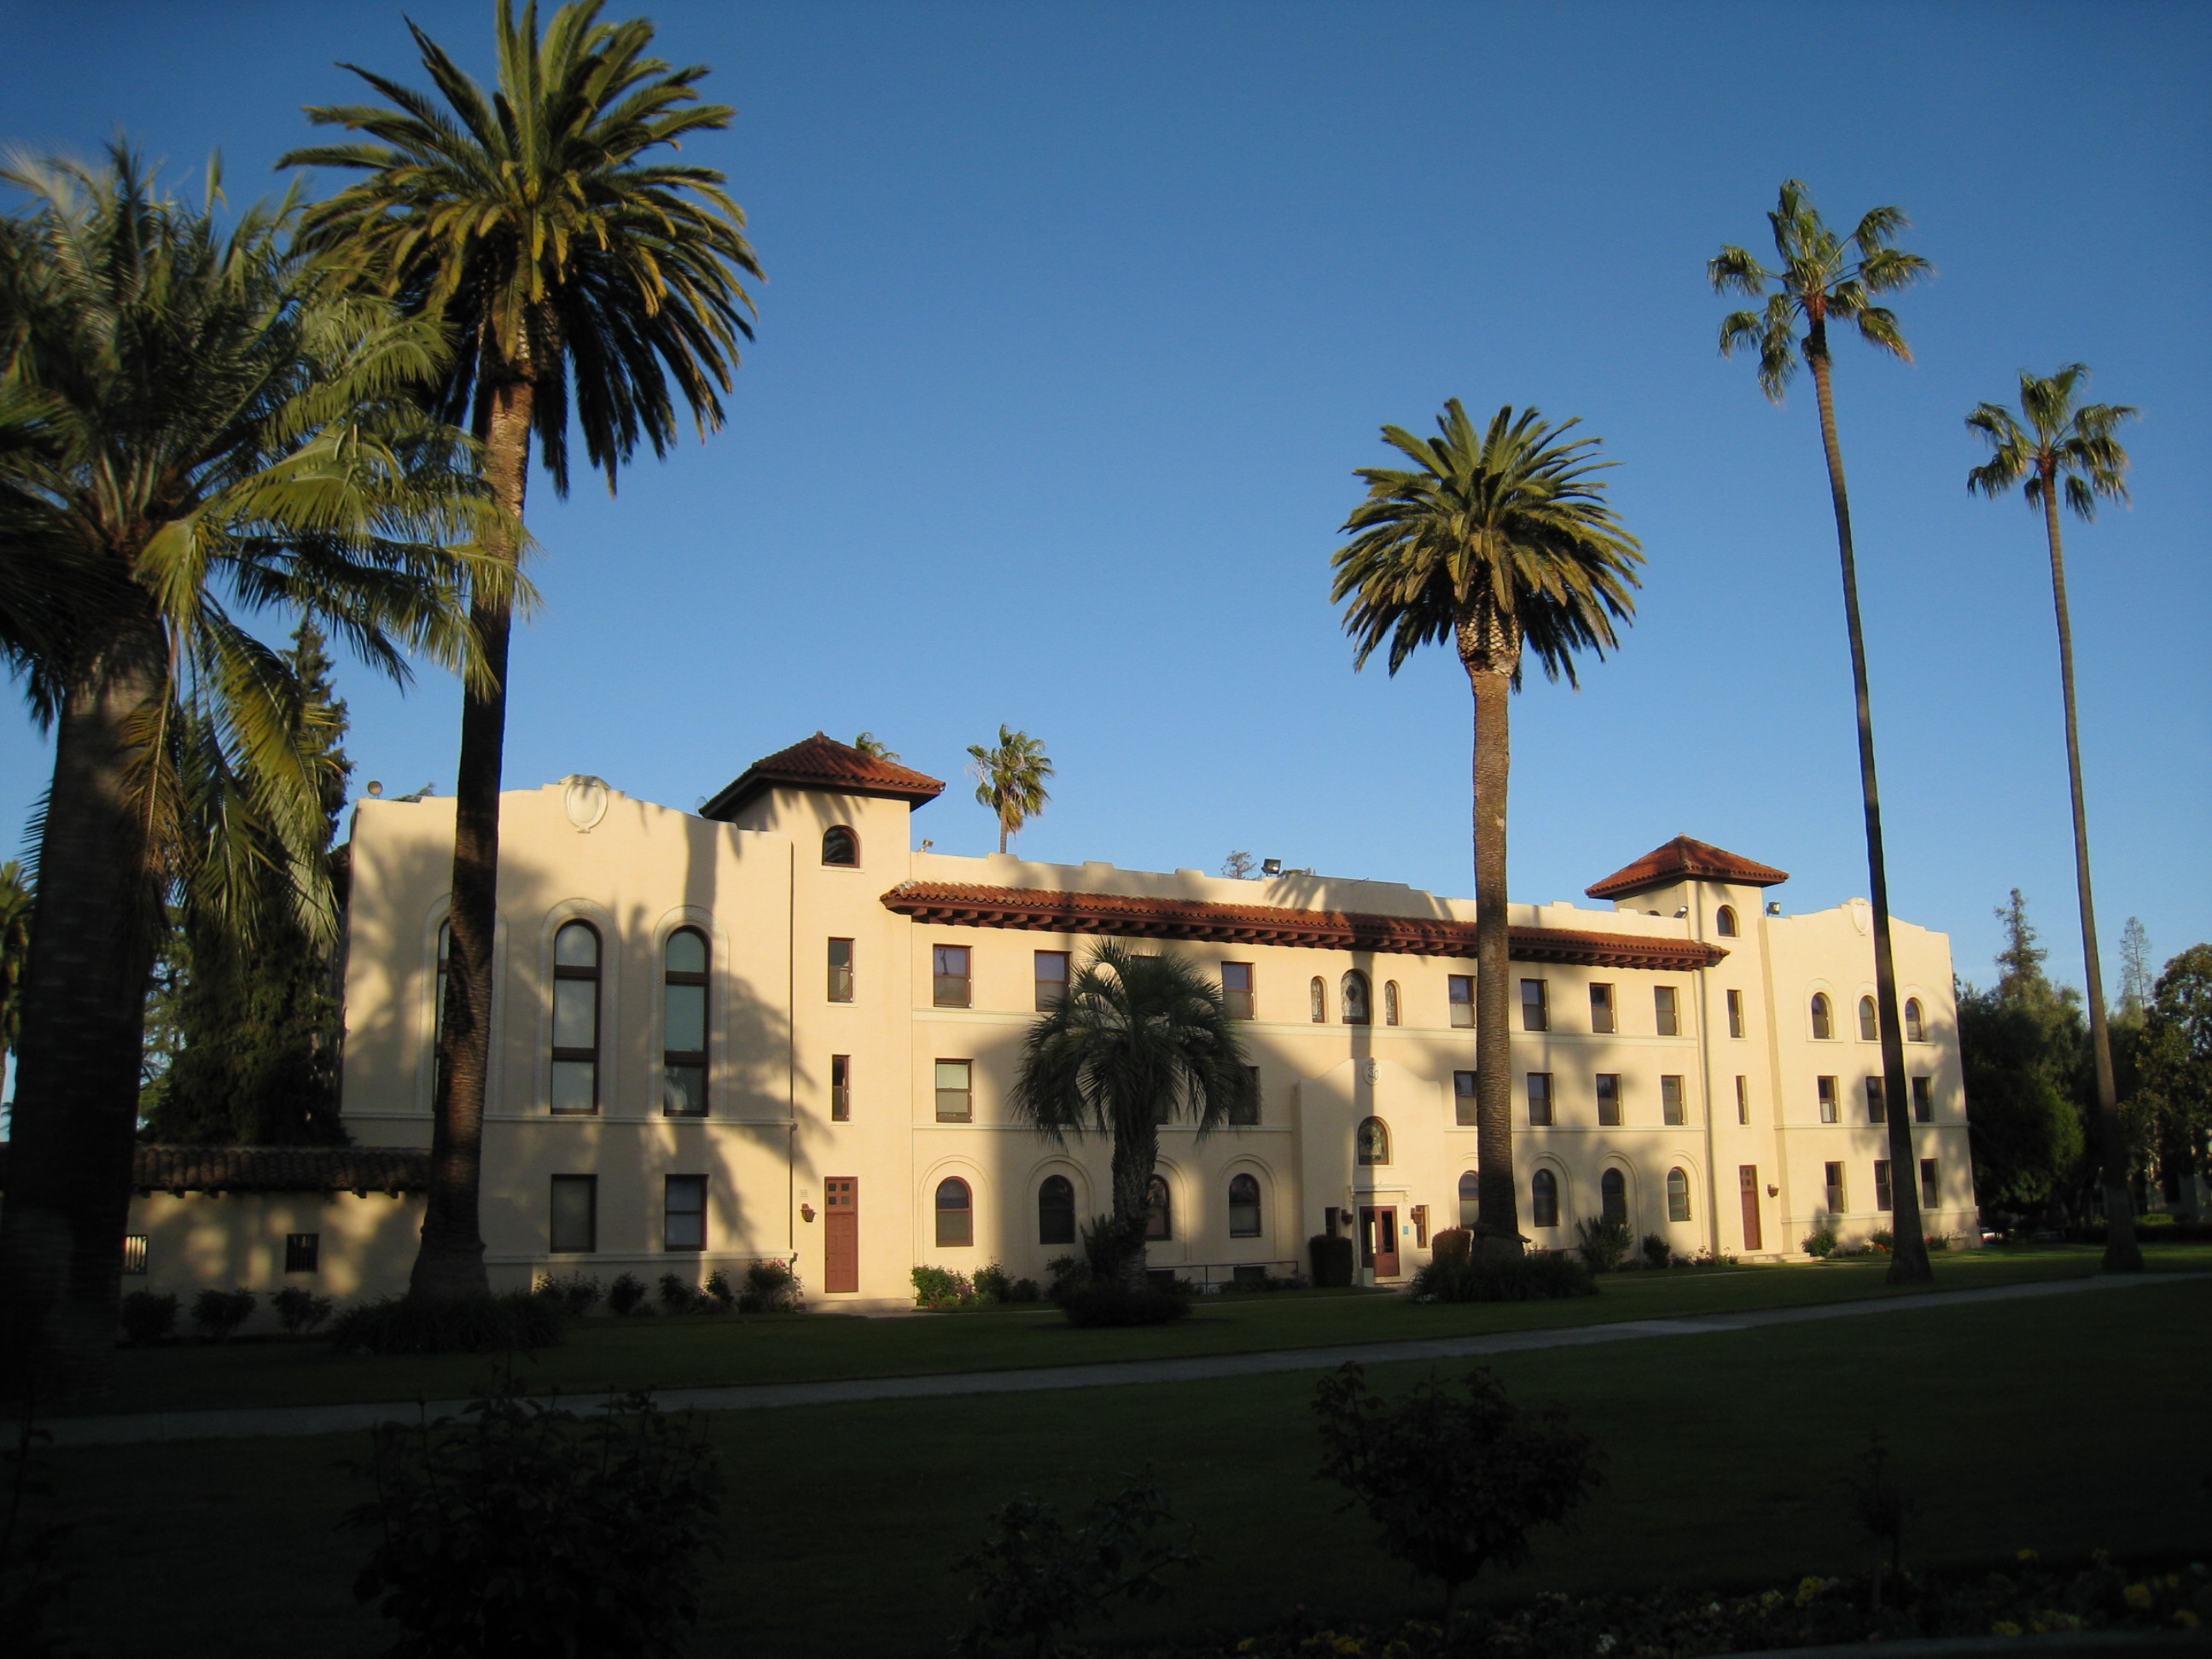 santa clara university essay prompt 2014 American university, gonzaga university, university of portland, university of san francisco, loyola marymount university, santa clara university, and university of san diego common application essay.